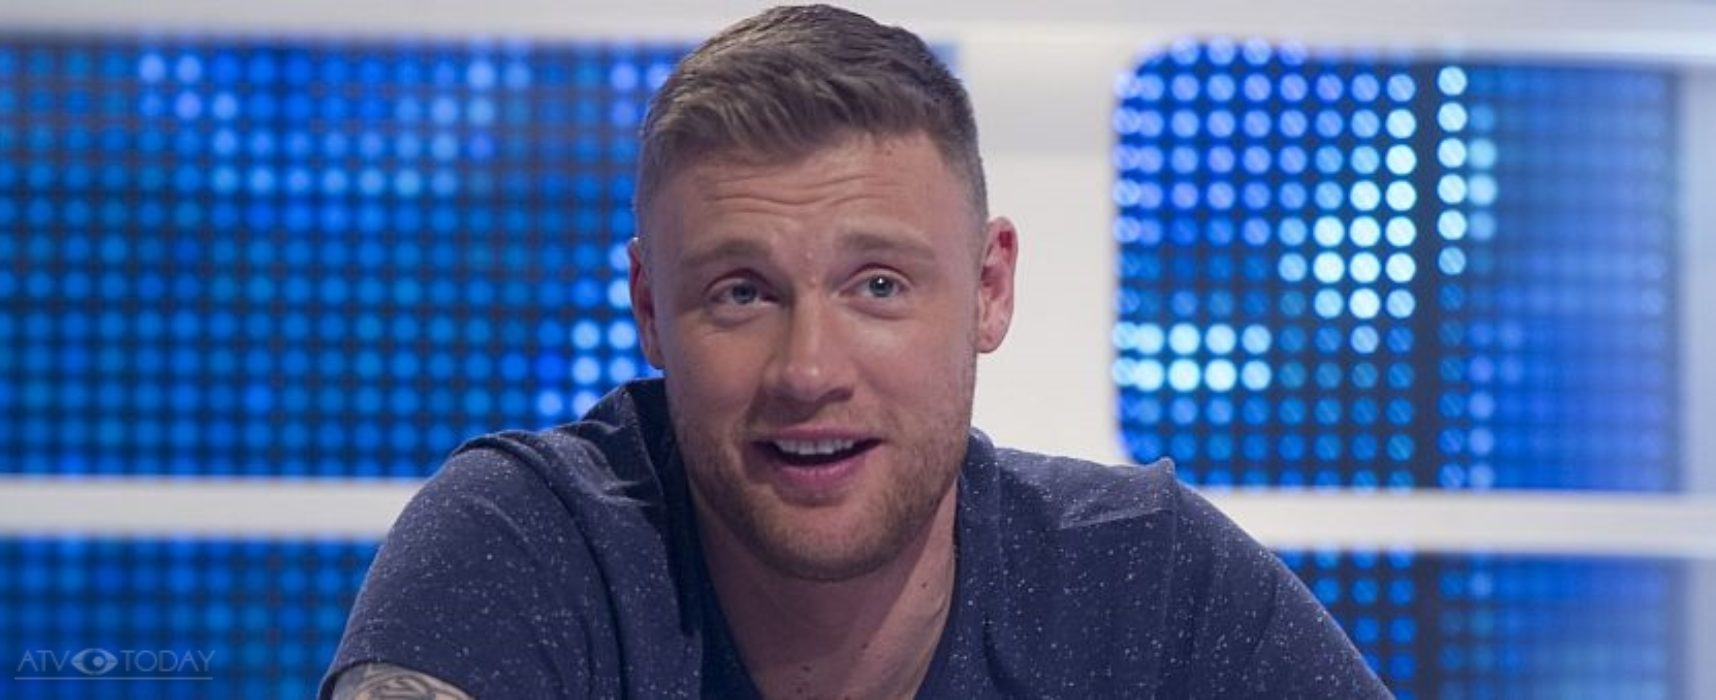 Sky One bring Carnage to screens with Freddie Flintoff, Lethal Bizzle and Vick Hope